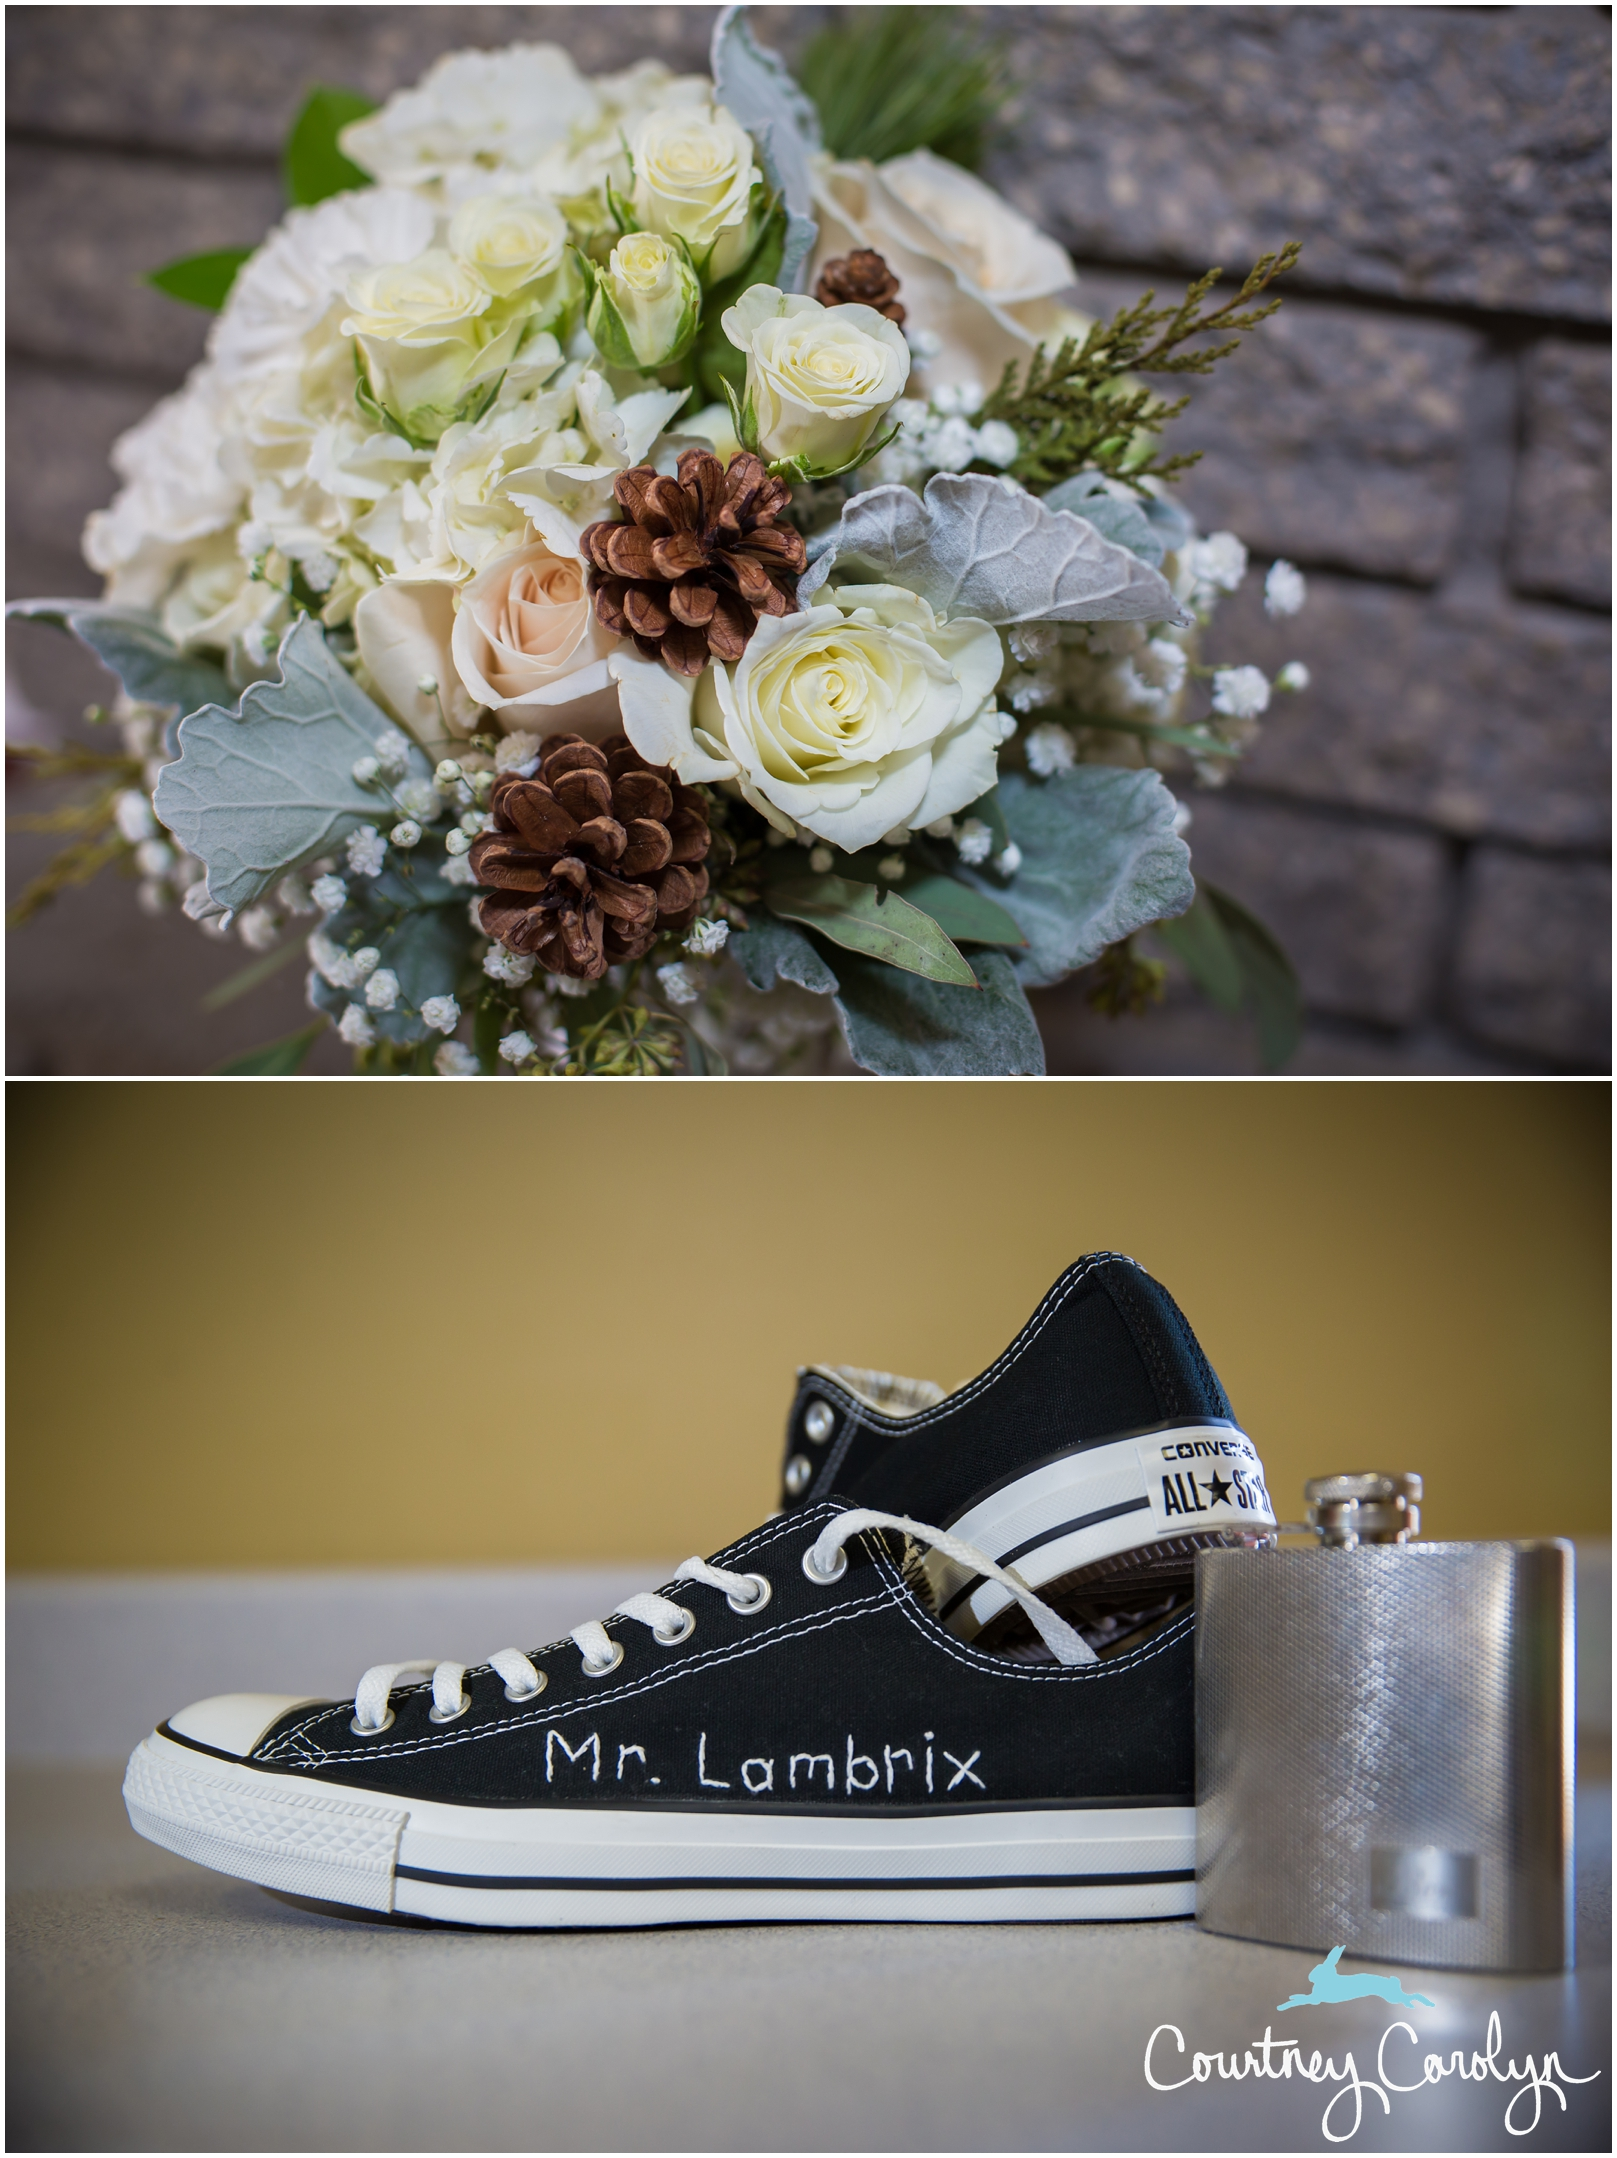 Wearing comfortable shoes was a must for their wedding day, and their Converse shoes were one of a kind, adorned with their last name, which the Mother of the Bride hand stitched herself.